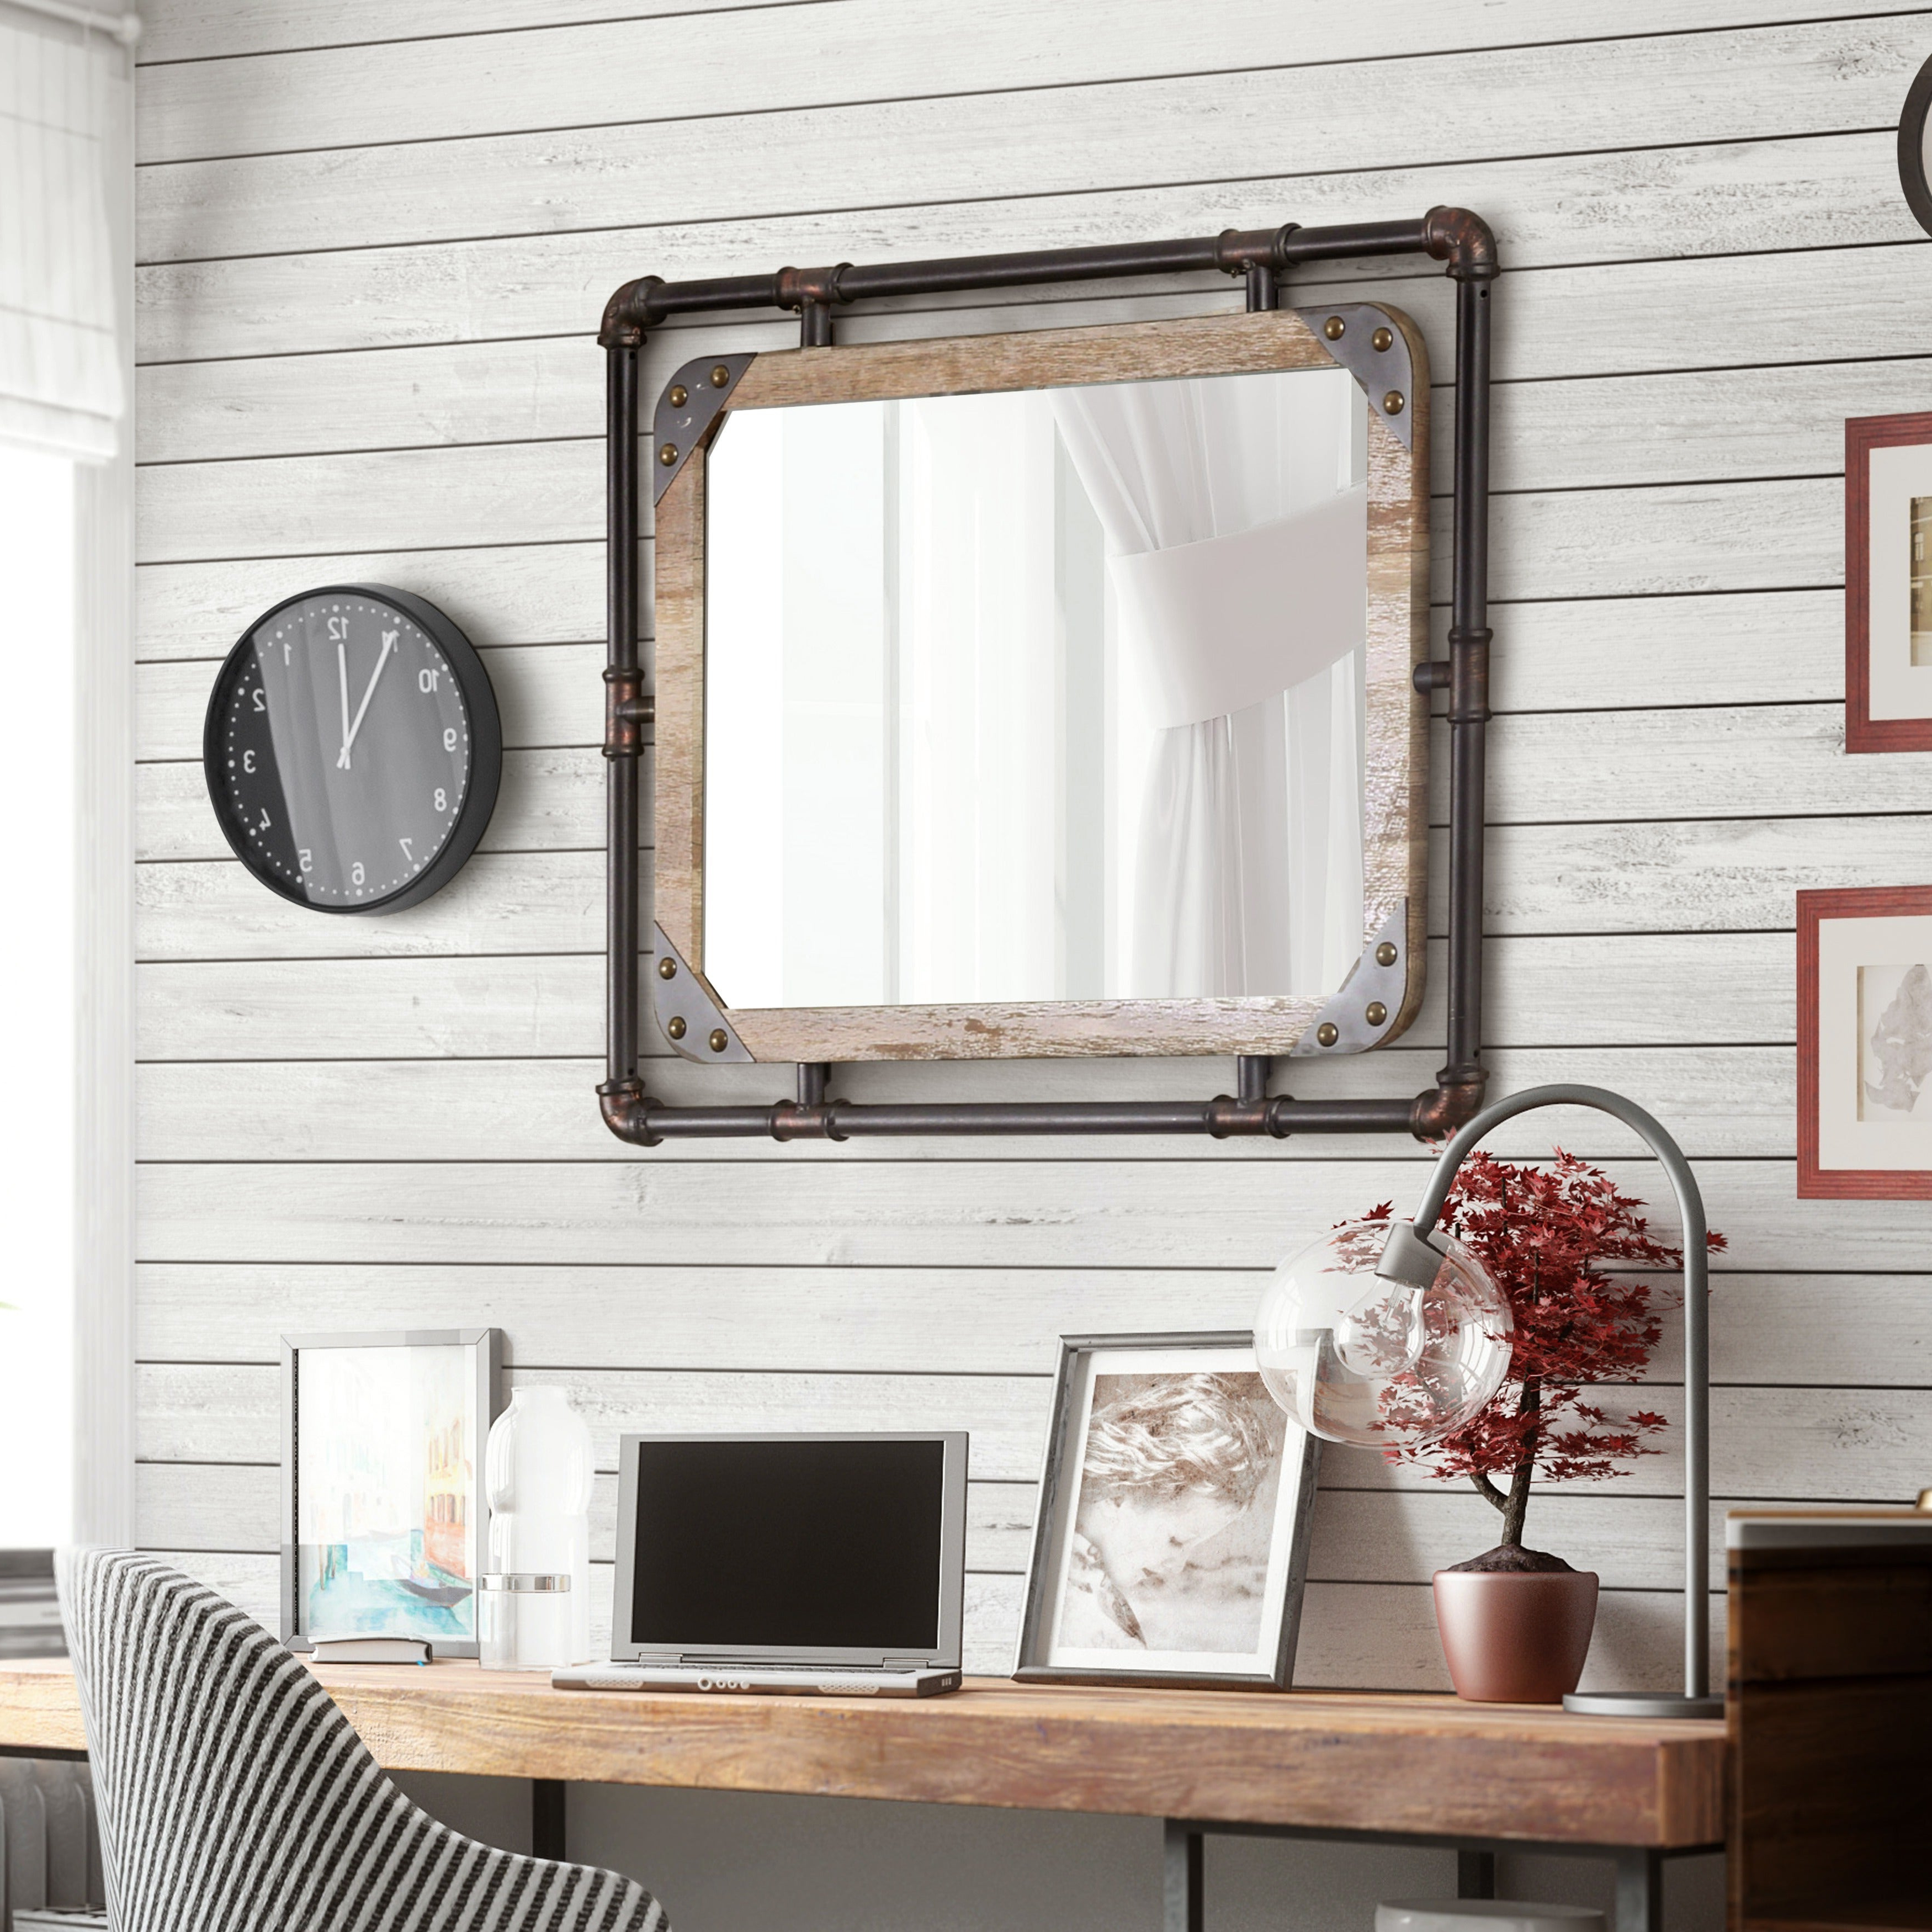 Popular Oak Framed Wall Mirrors Intended For Furniture Of America Revo Industrial Distressed Wall Mirror (View 20 of 20)